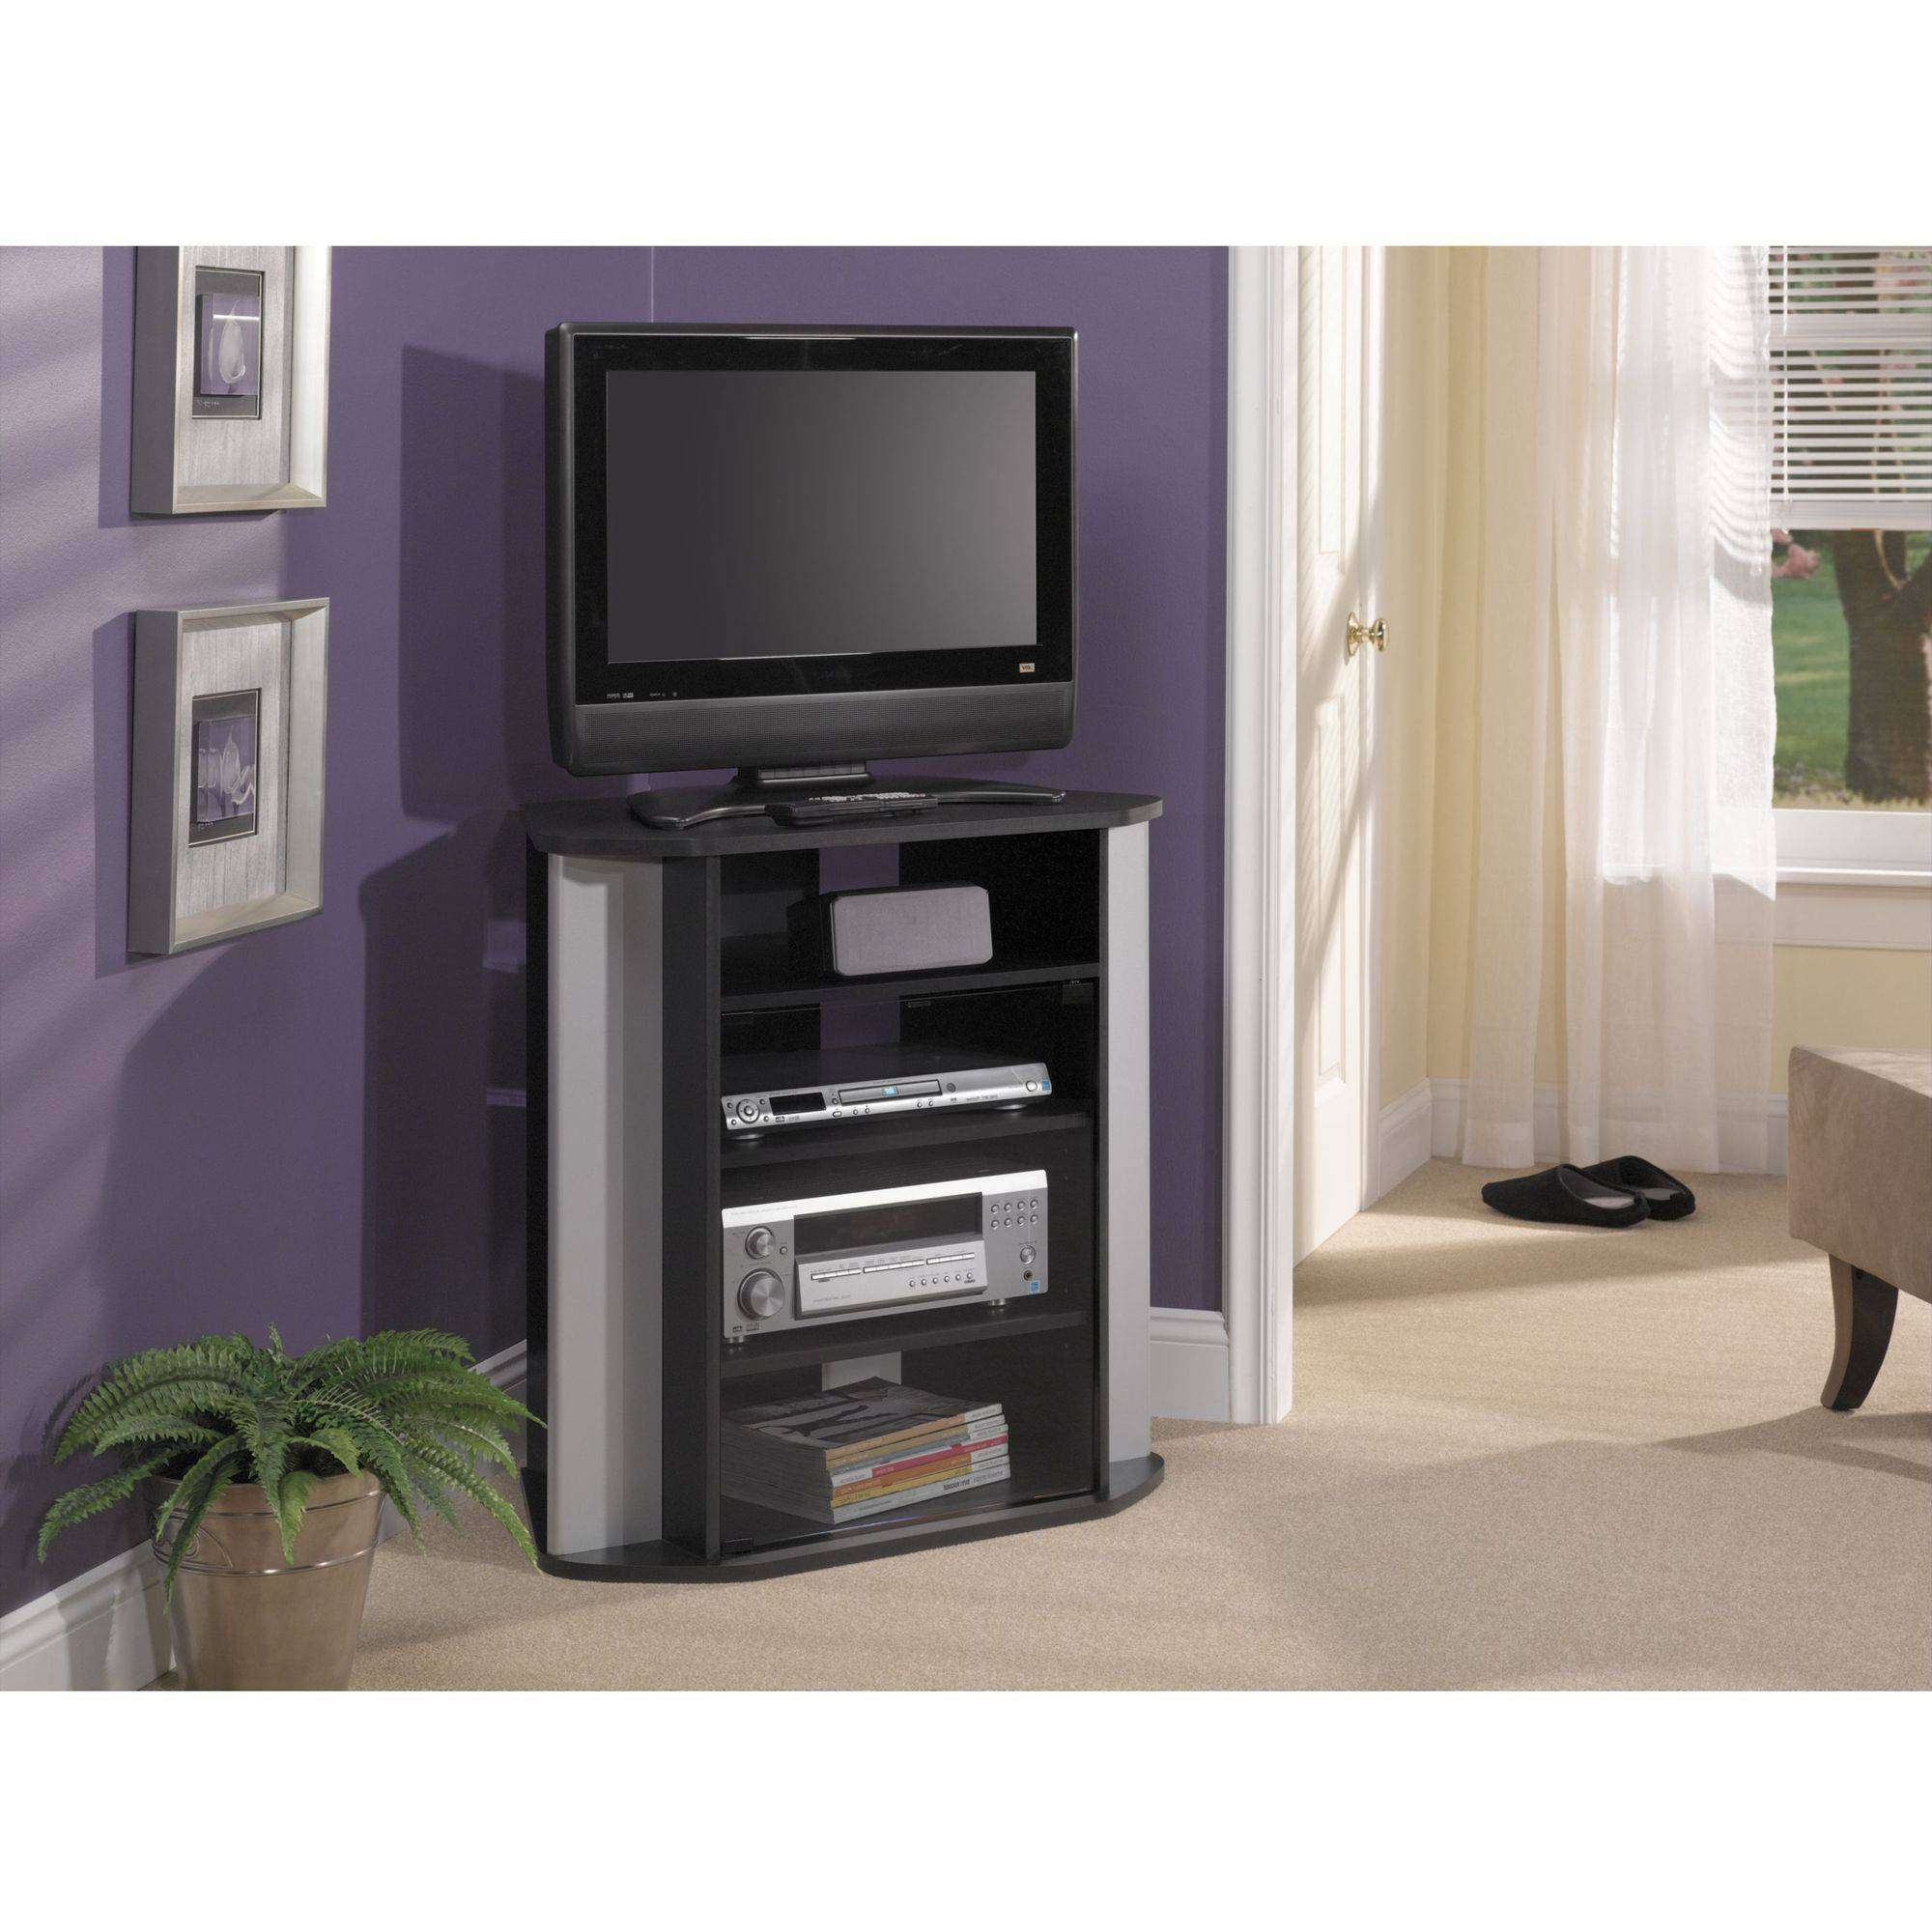 Corner Tv Stands – Walmart Intended For Corner Tv Stands For 46 Inch Flat Screen (View 4 of 15)